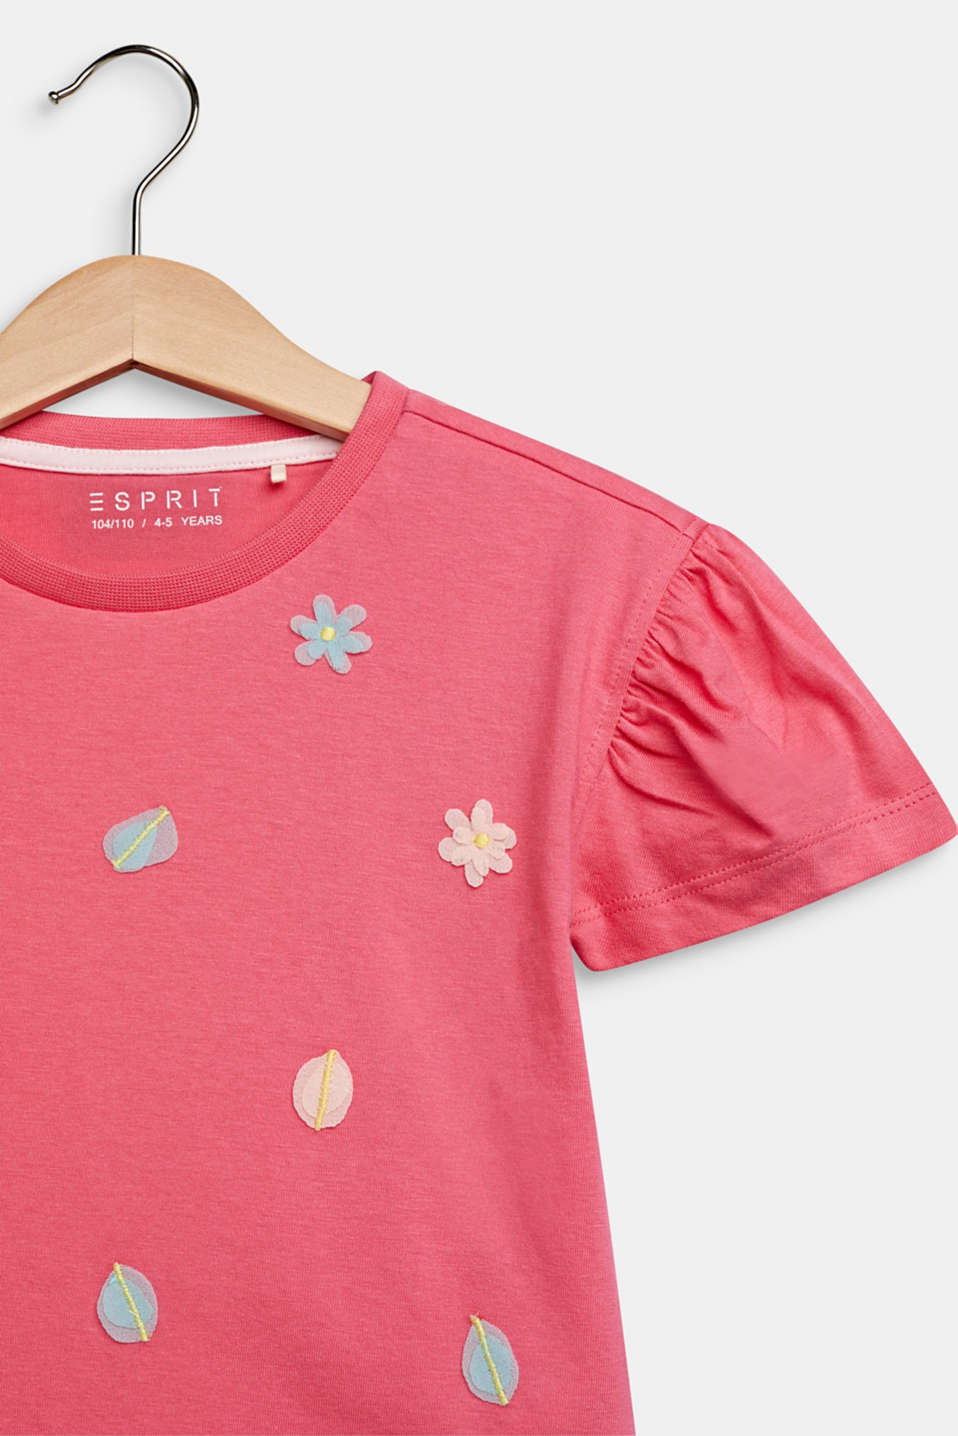 T-shirt with appliqués and puff sleeves, DARK PINK, detail image number 2